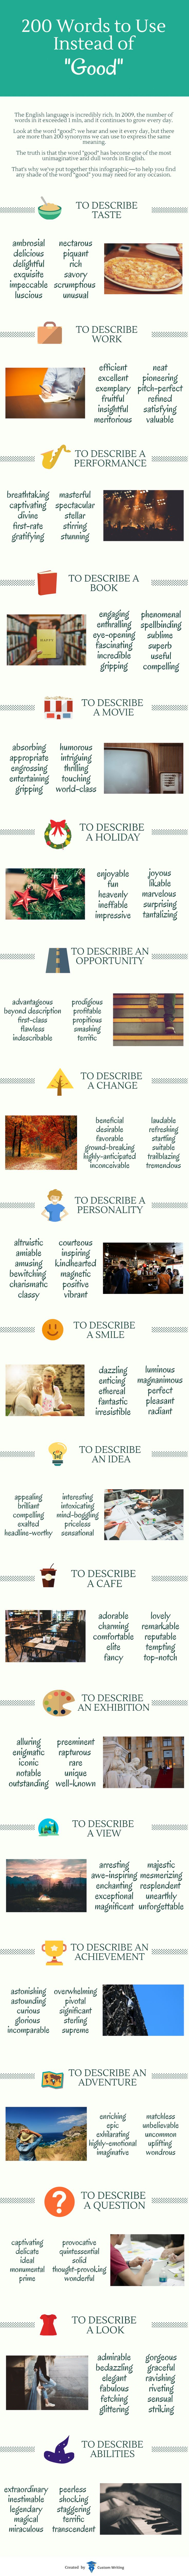 "200 Words to Use Instead of ""Good"" #Infographic #Education"